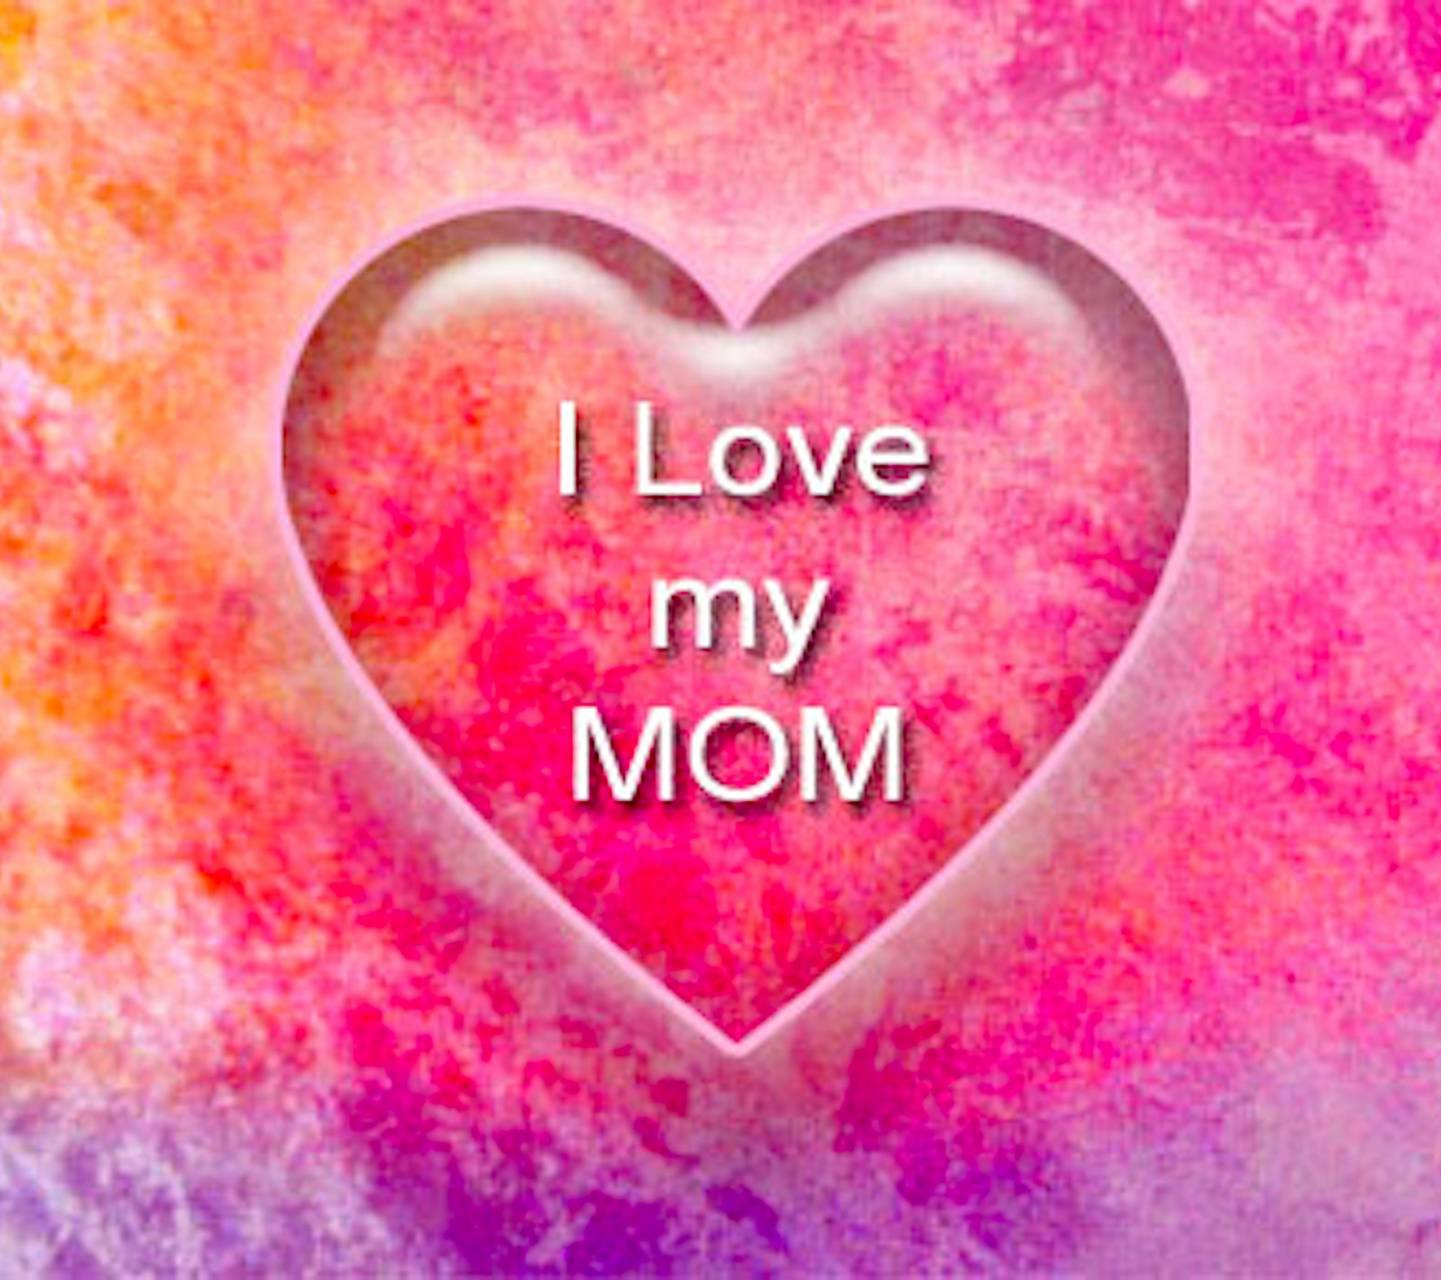 I Love My Mom Wallpaper By Xrscorpio 15 Free On Zedge